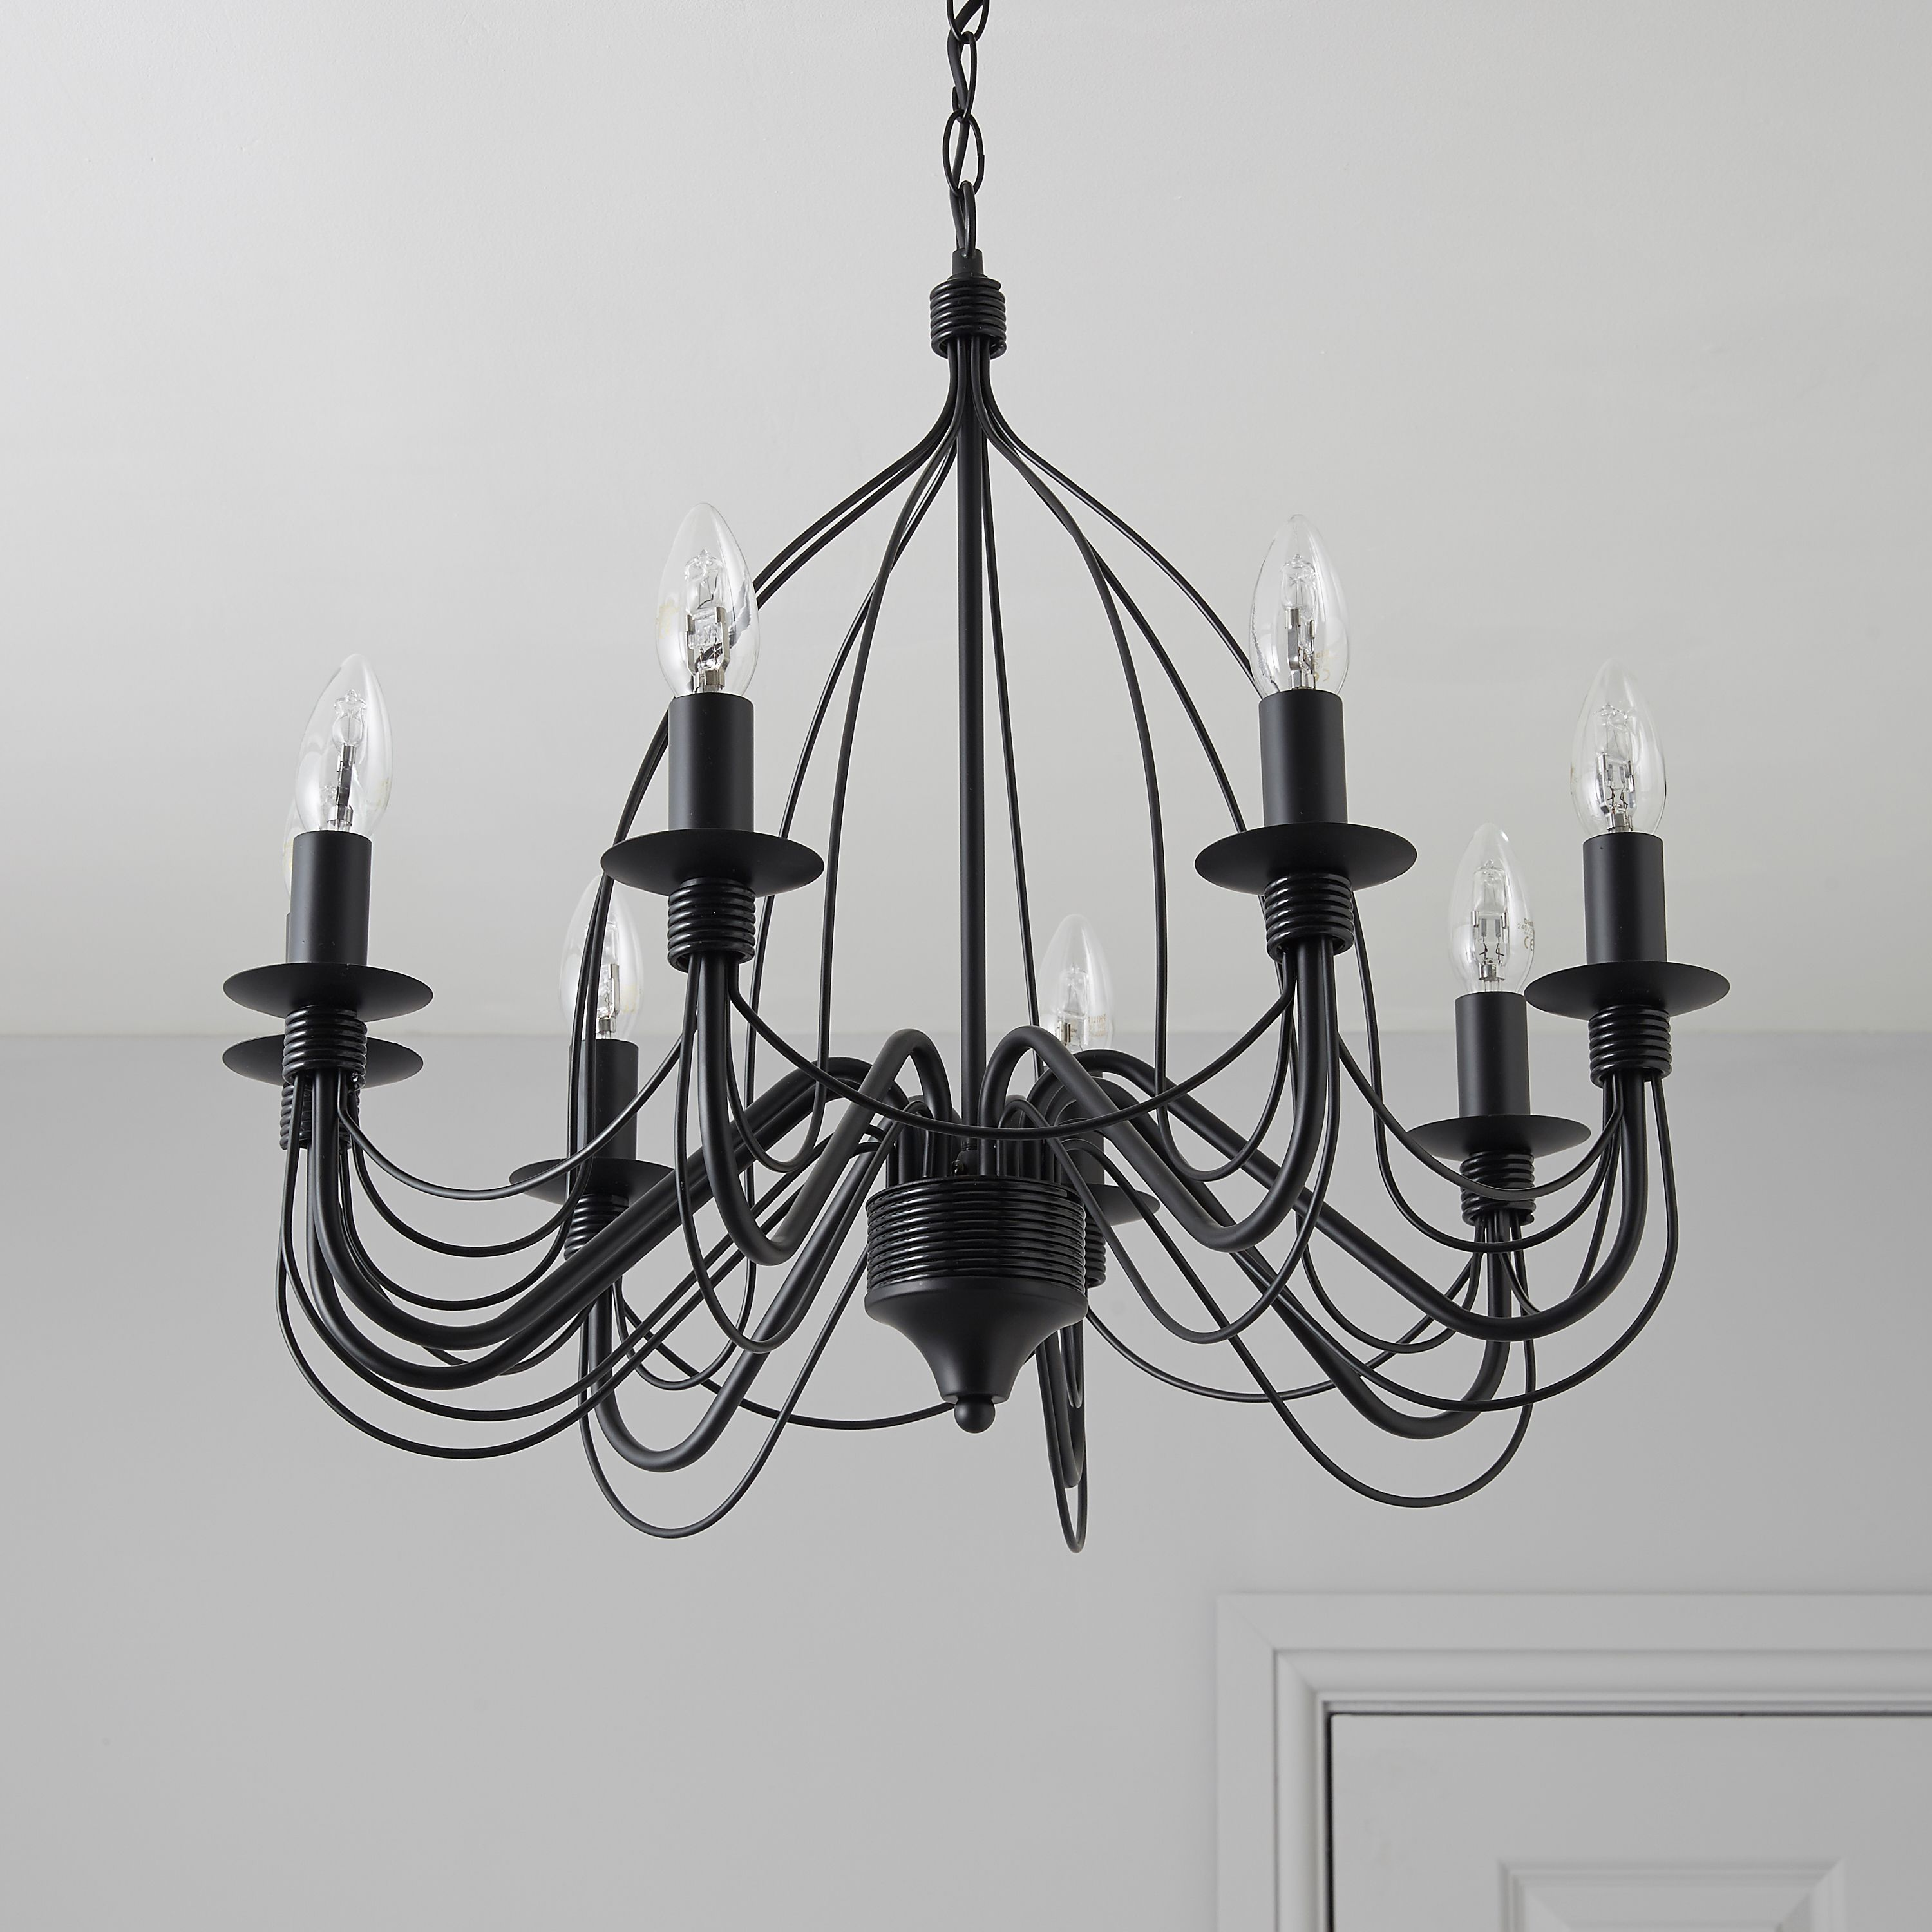 Vas Birdcage Black 8 Lamp Pendant Ceiling Light | Ceiling, Pendants ...